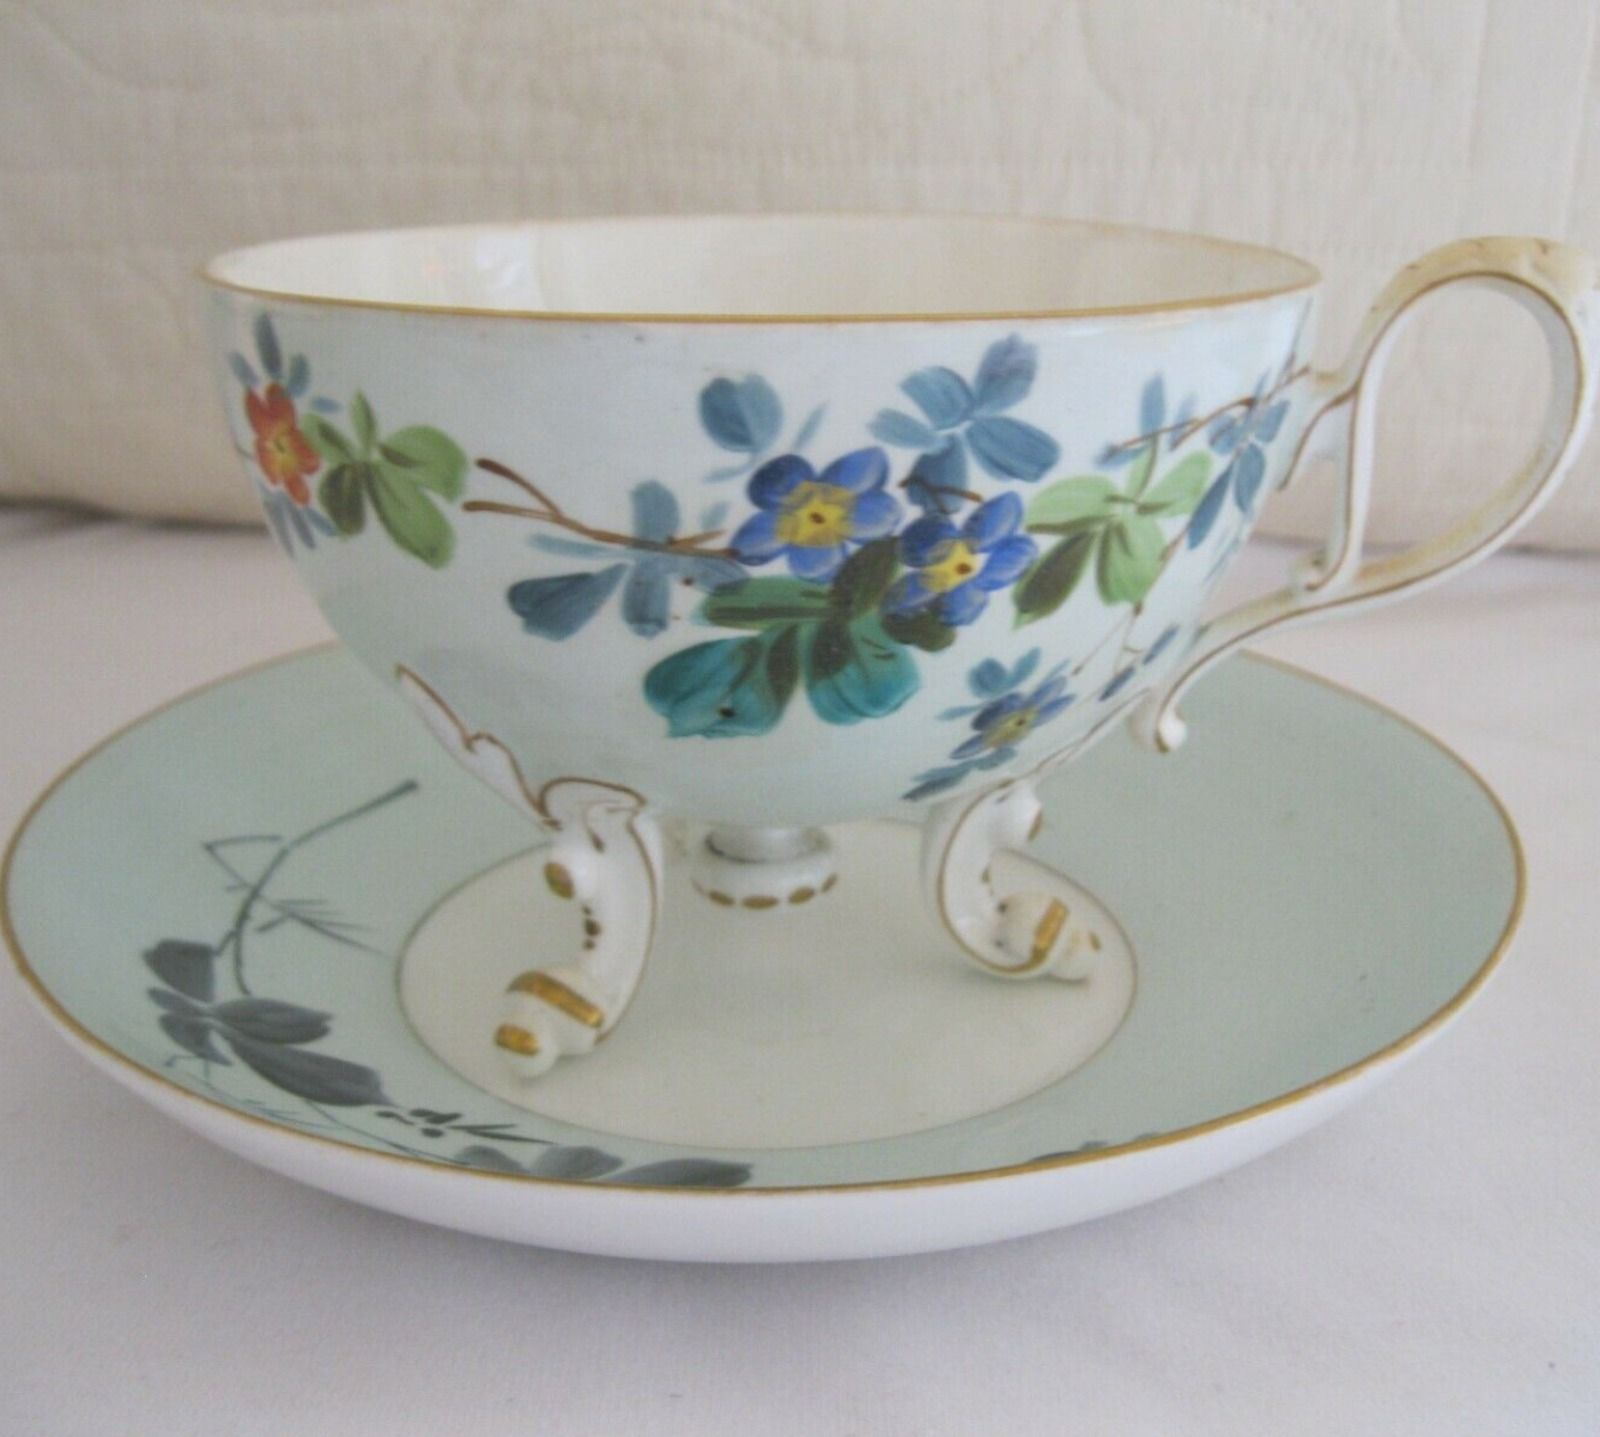 Samson Bridgwood London Antique Mustache Cup And Saucer Set Vintagedishes Shabychic Shabbychicdecor Cupandsaucercraft In 2020 With Images Pretty Tea Cups Tea Cups Fancy Cup